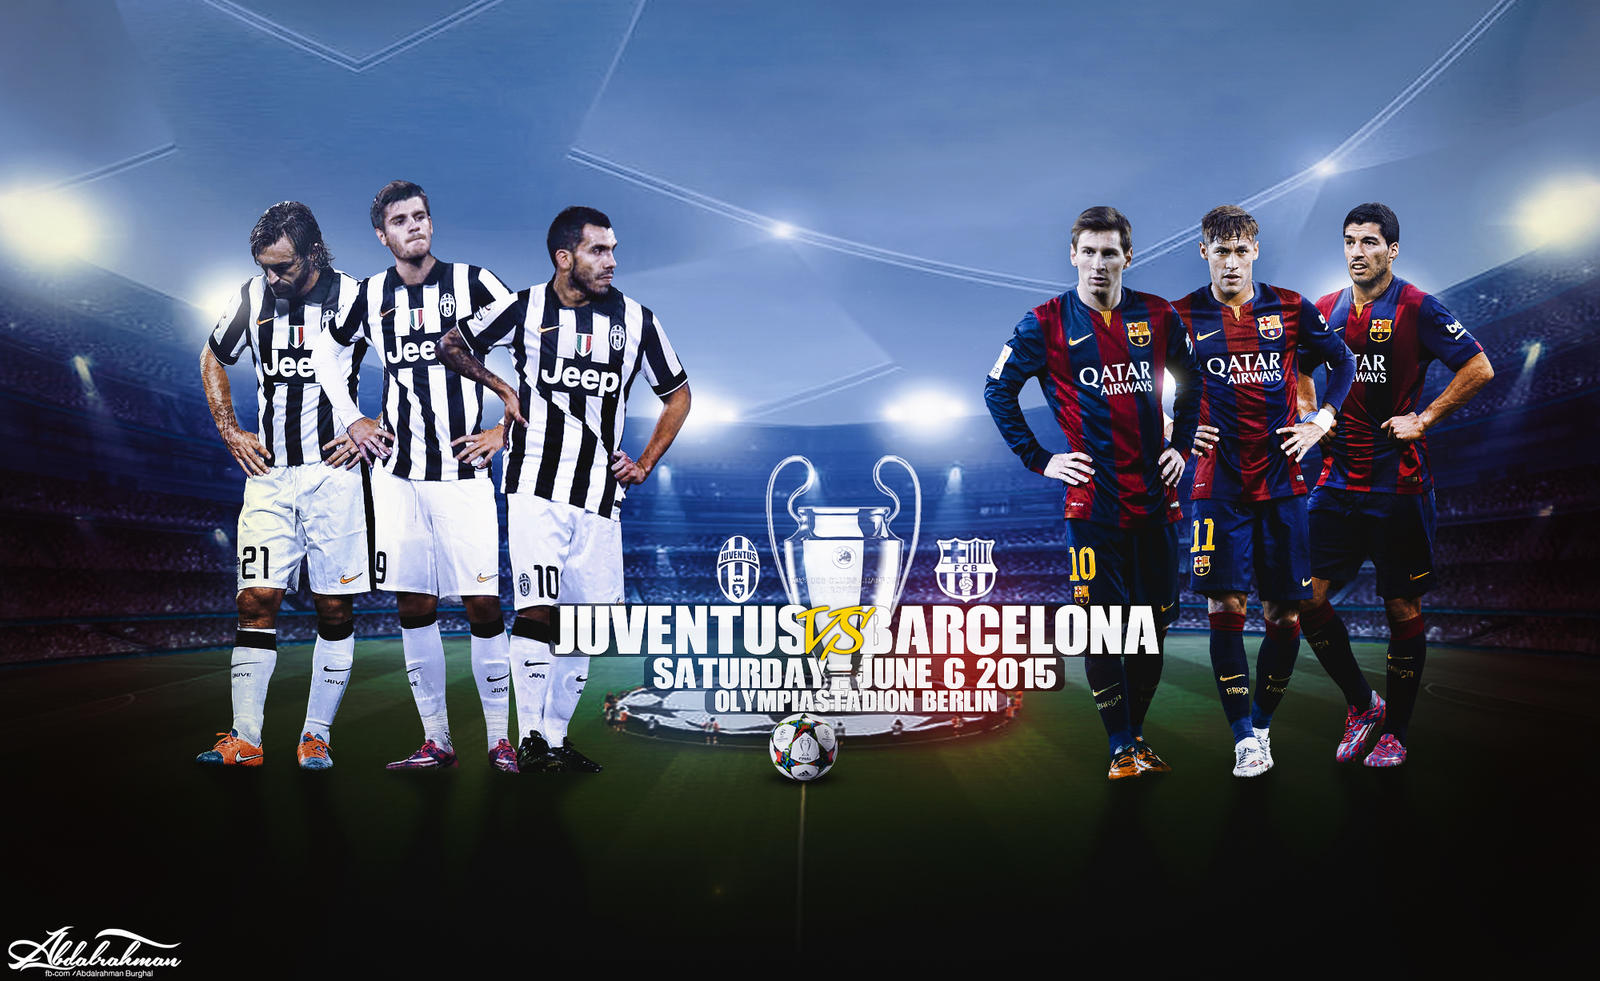 Fc Barcelona Vs Juventus By Designer Abdalrahman On Deviantart